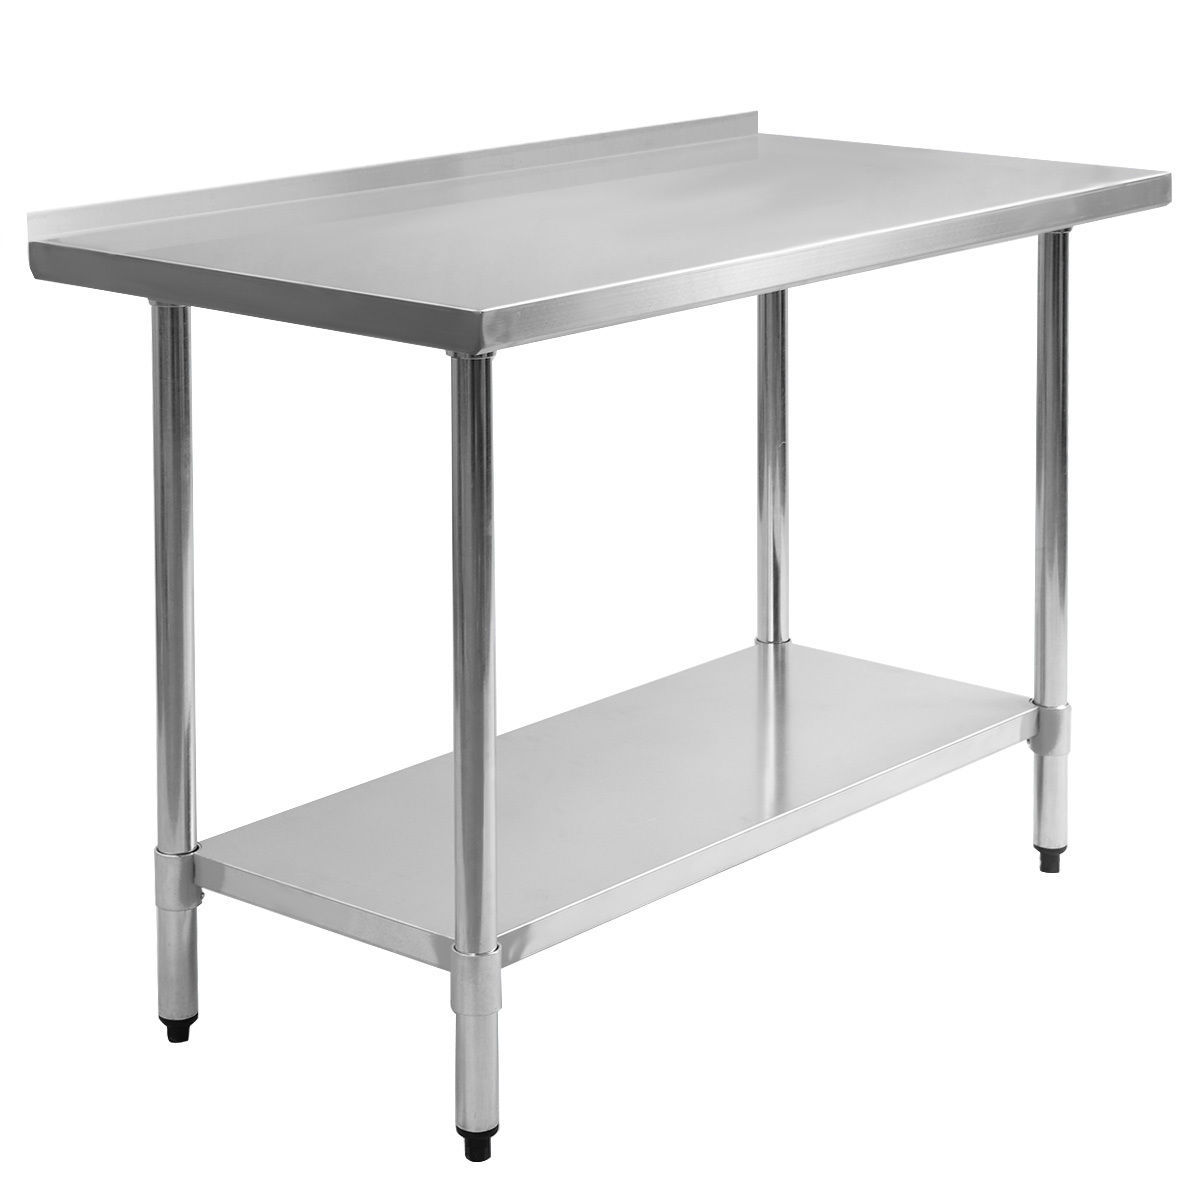 stainless steel work table for sale only 2 left at 60. Black Bedroom Furniture Sets. Home Design Ideas